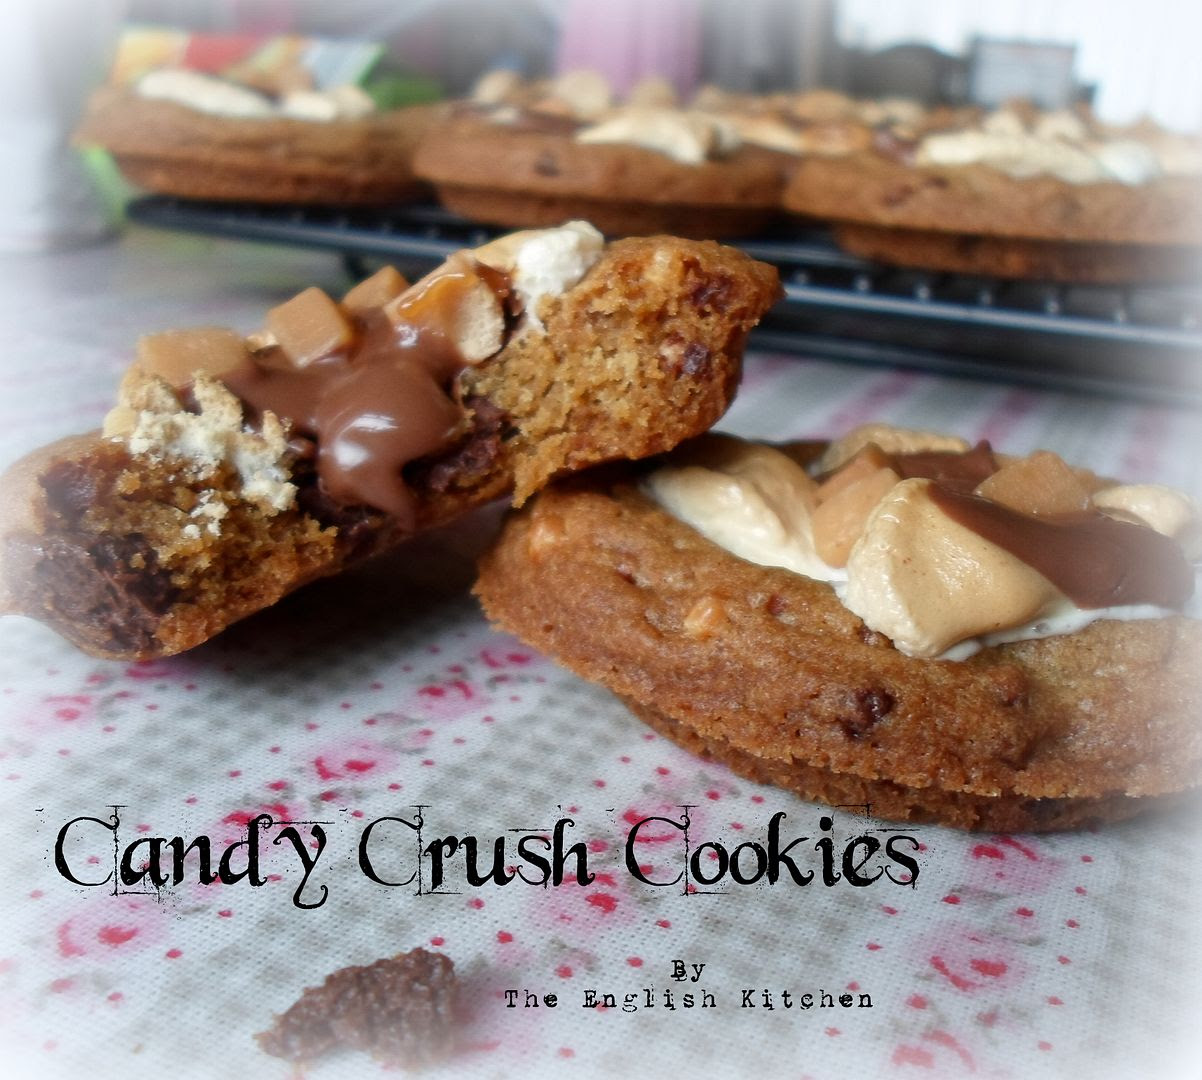 Chocolate Oreos Dunmore Candy Kitchen: The English Kitchen: Candy Crush Cookies